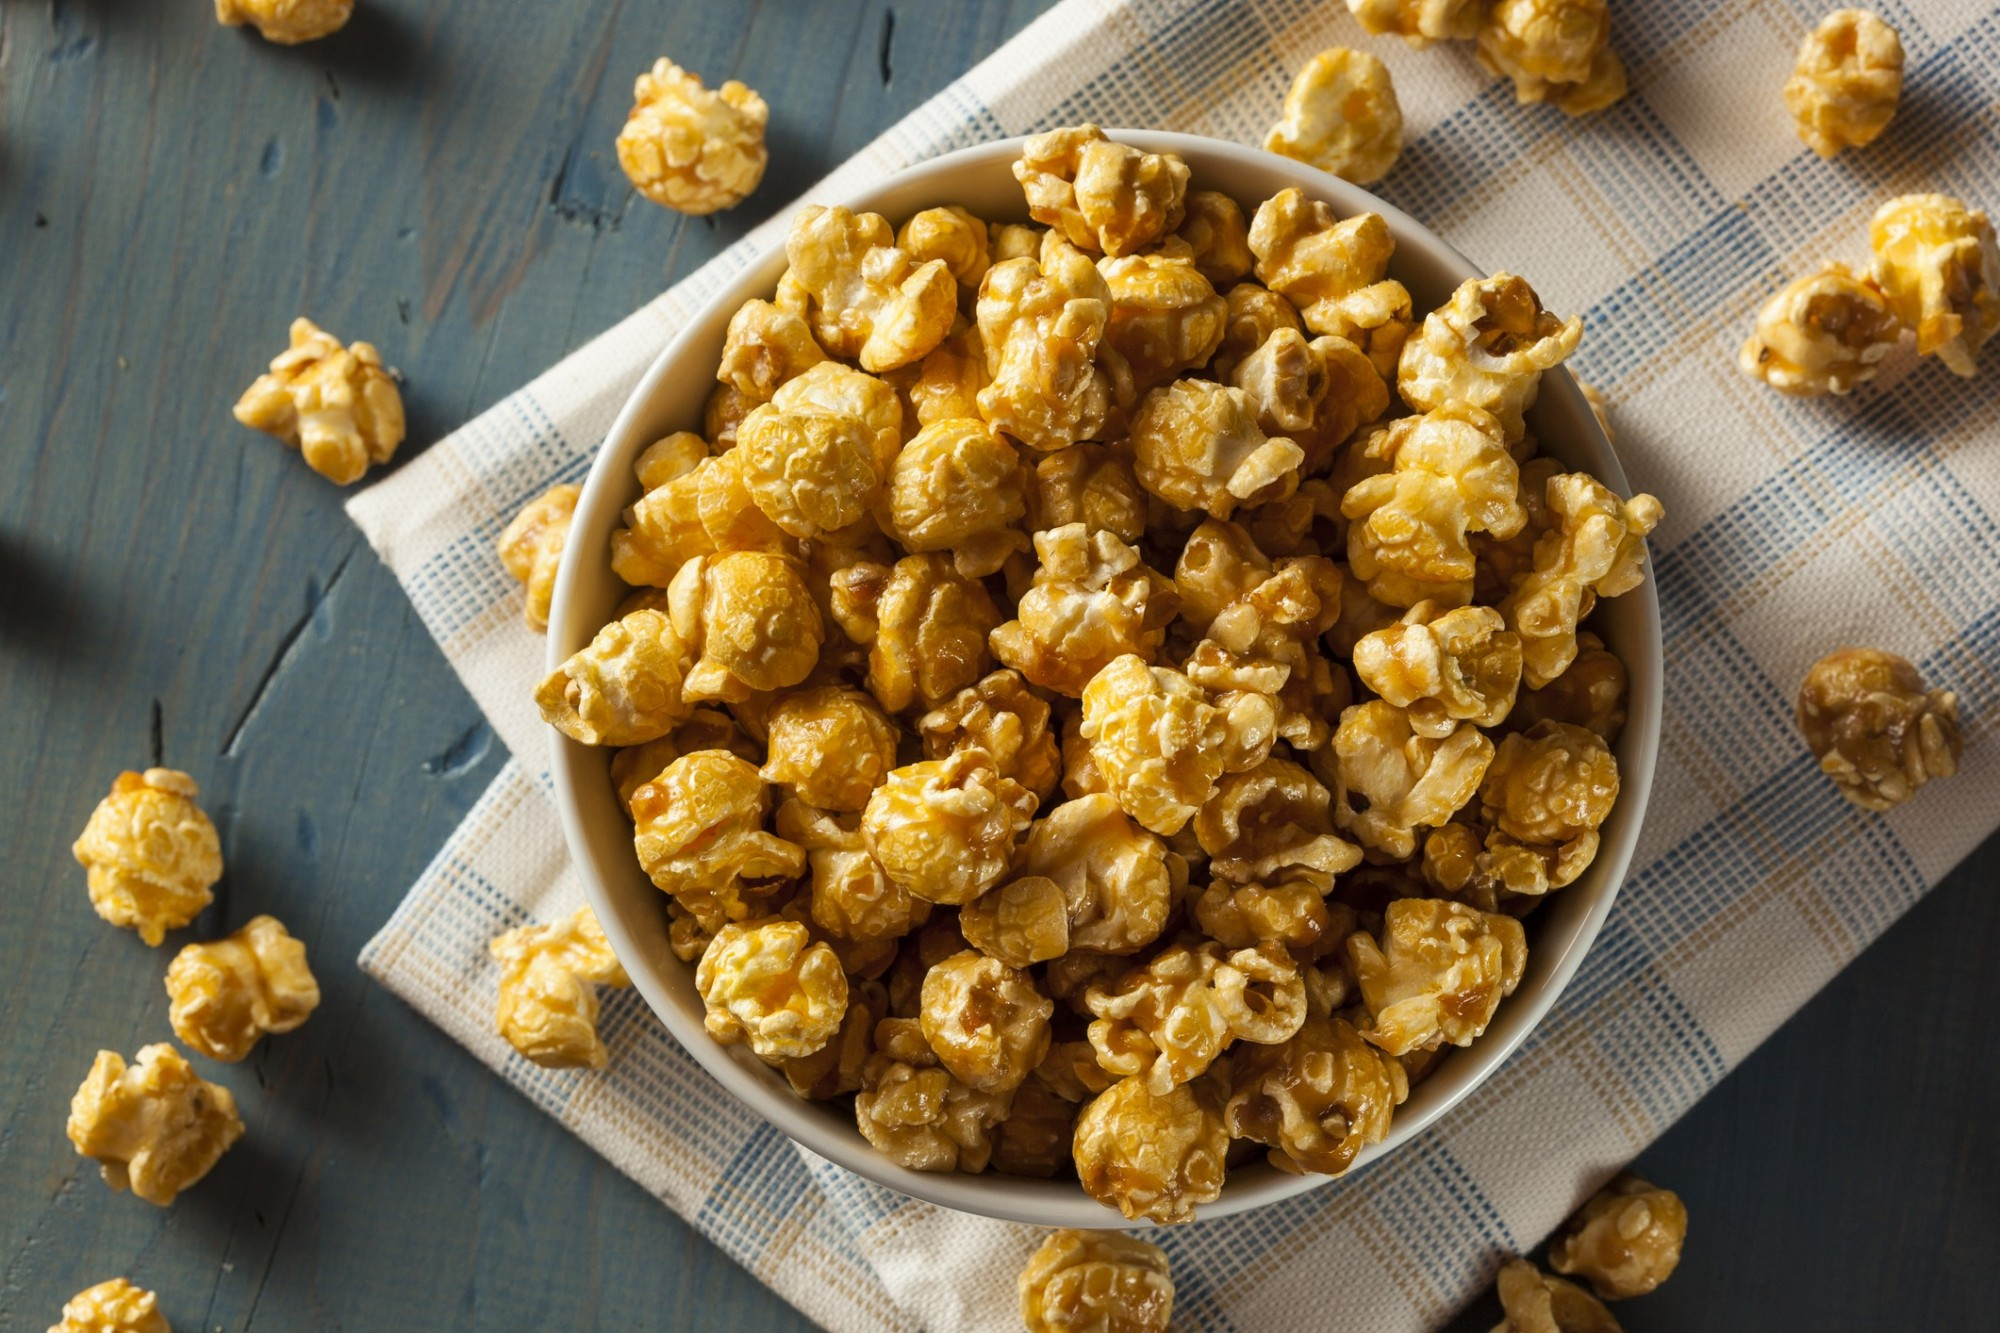 Bowl of popcorn overflowing onto a wooden table